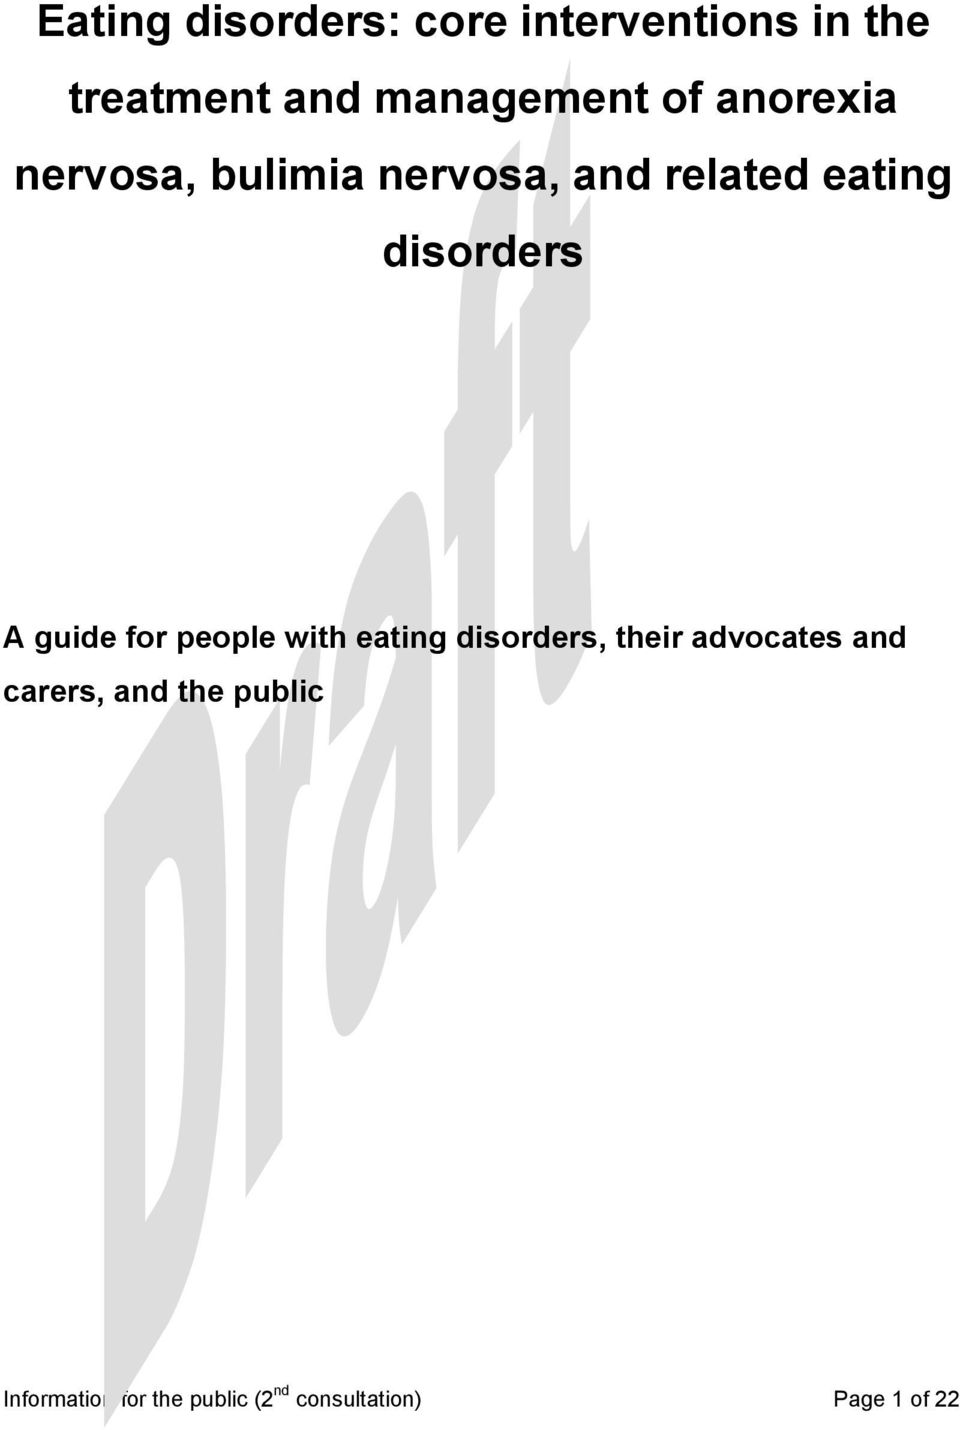 guide for people with eating disorders, their advocates and carers,